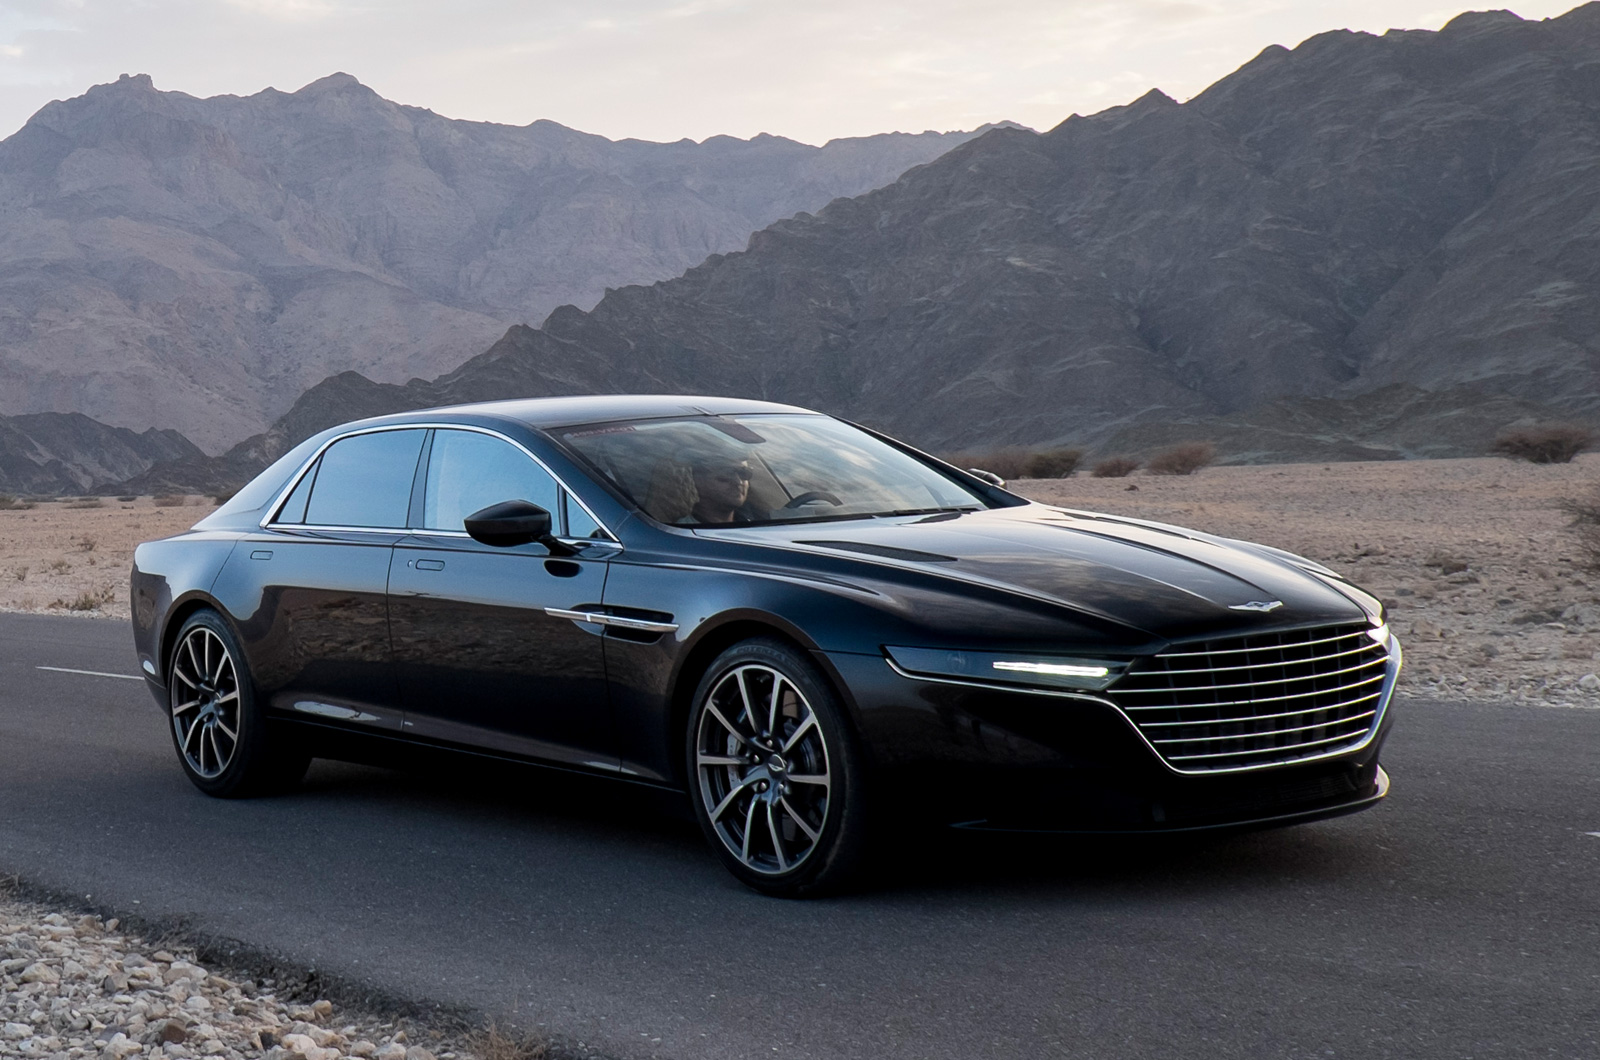 aston martin lagonda photo gallery car gallery luxury sports cars autocar india. Black Bedroom Furniture Sets. Home Design Ideas